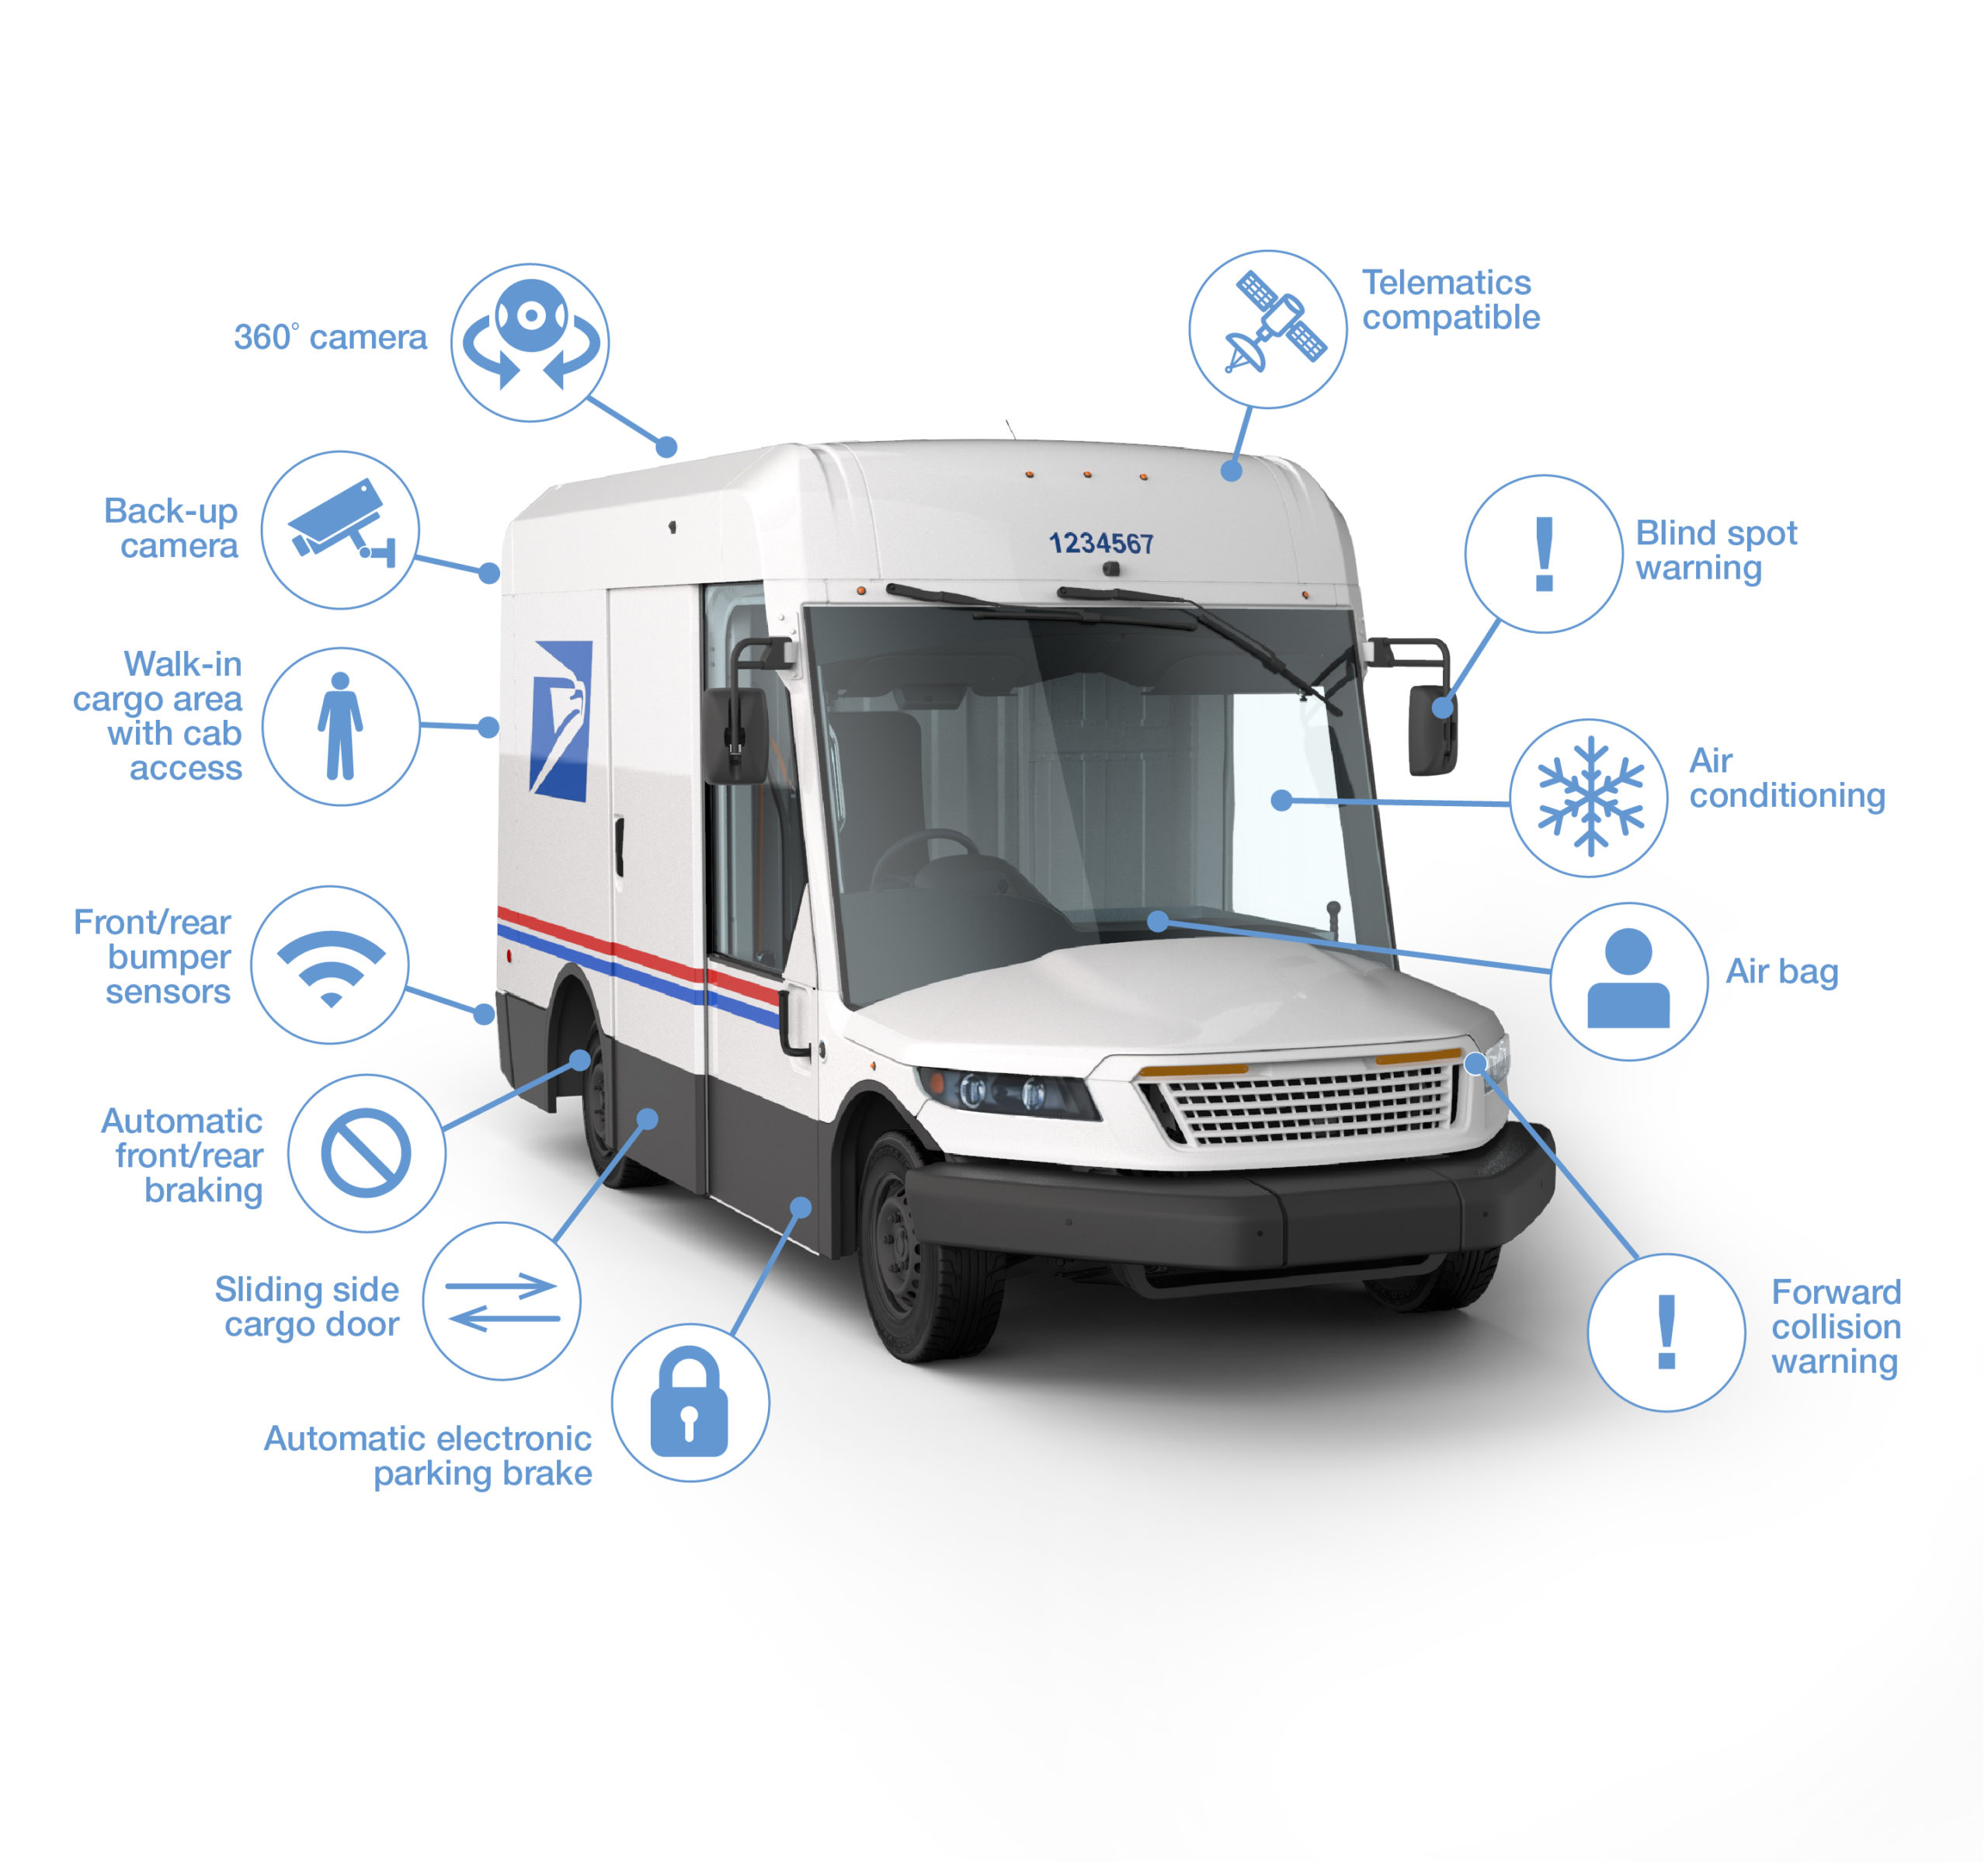 USPS Next Generation Delivery Vehicle. Image from USPS.